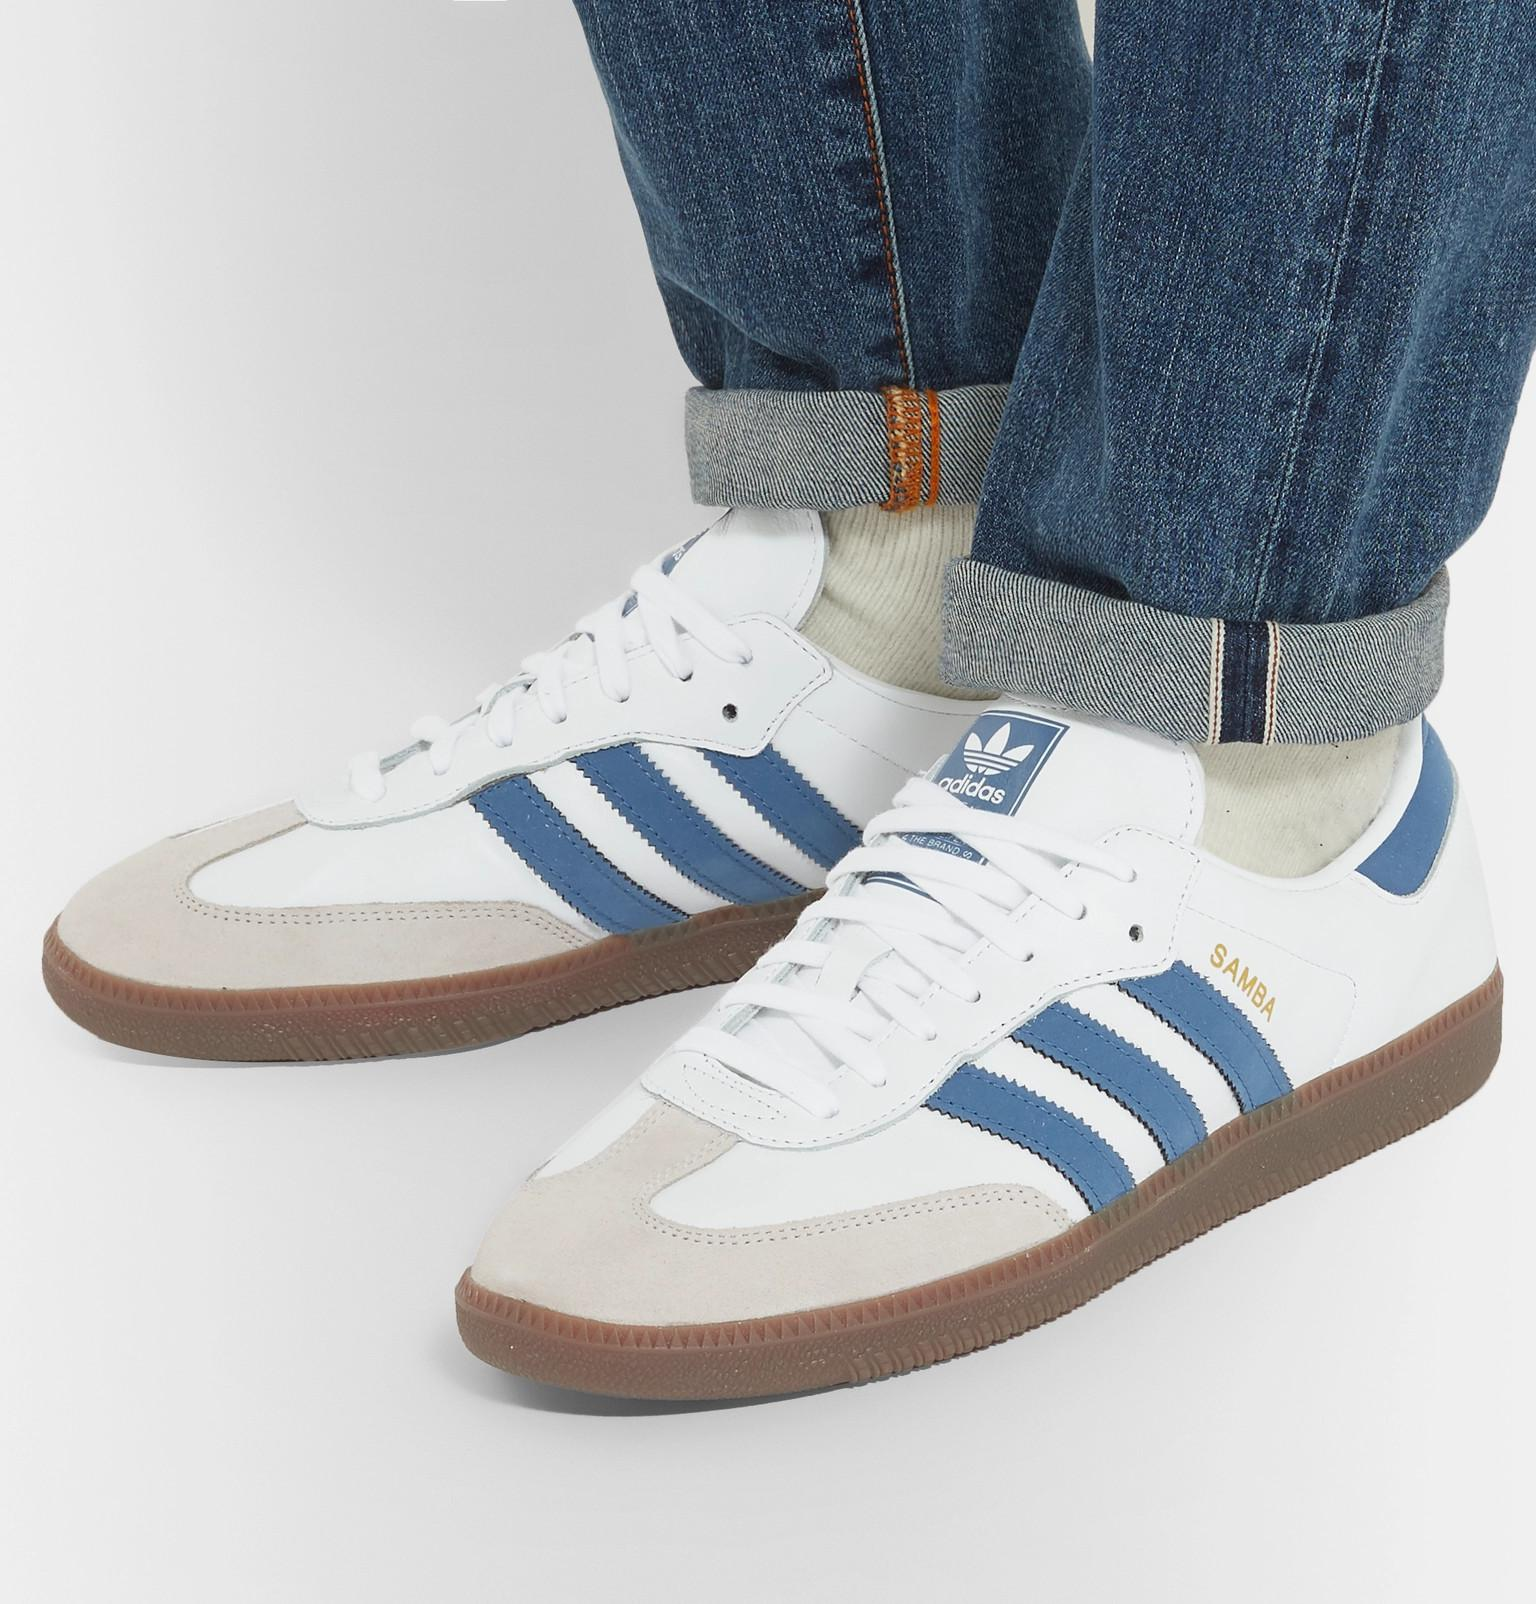 Samba White Og Leather Originals In Suede Adidas Trimmed Sneakers 7Pgq5x8nwE